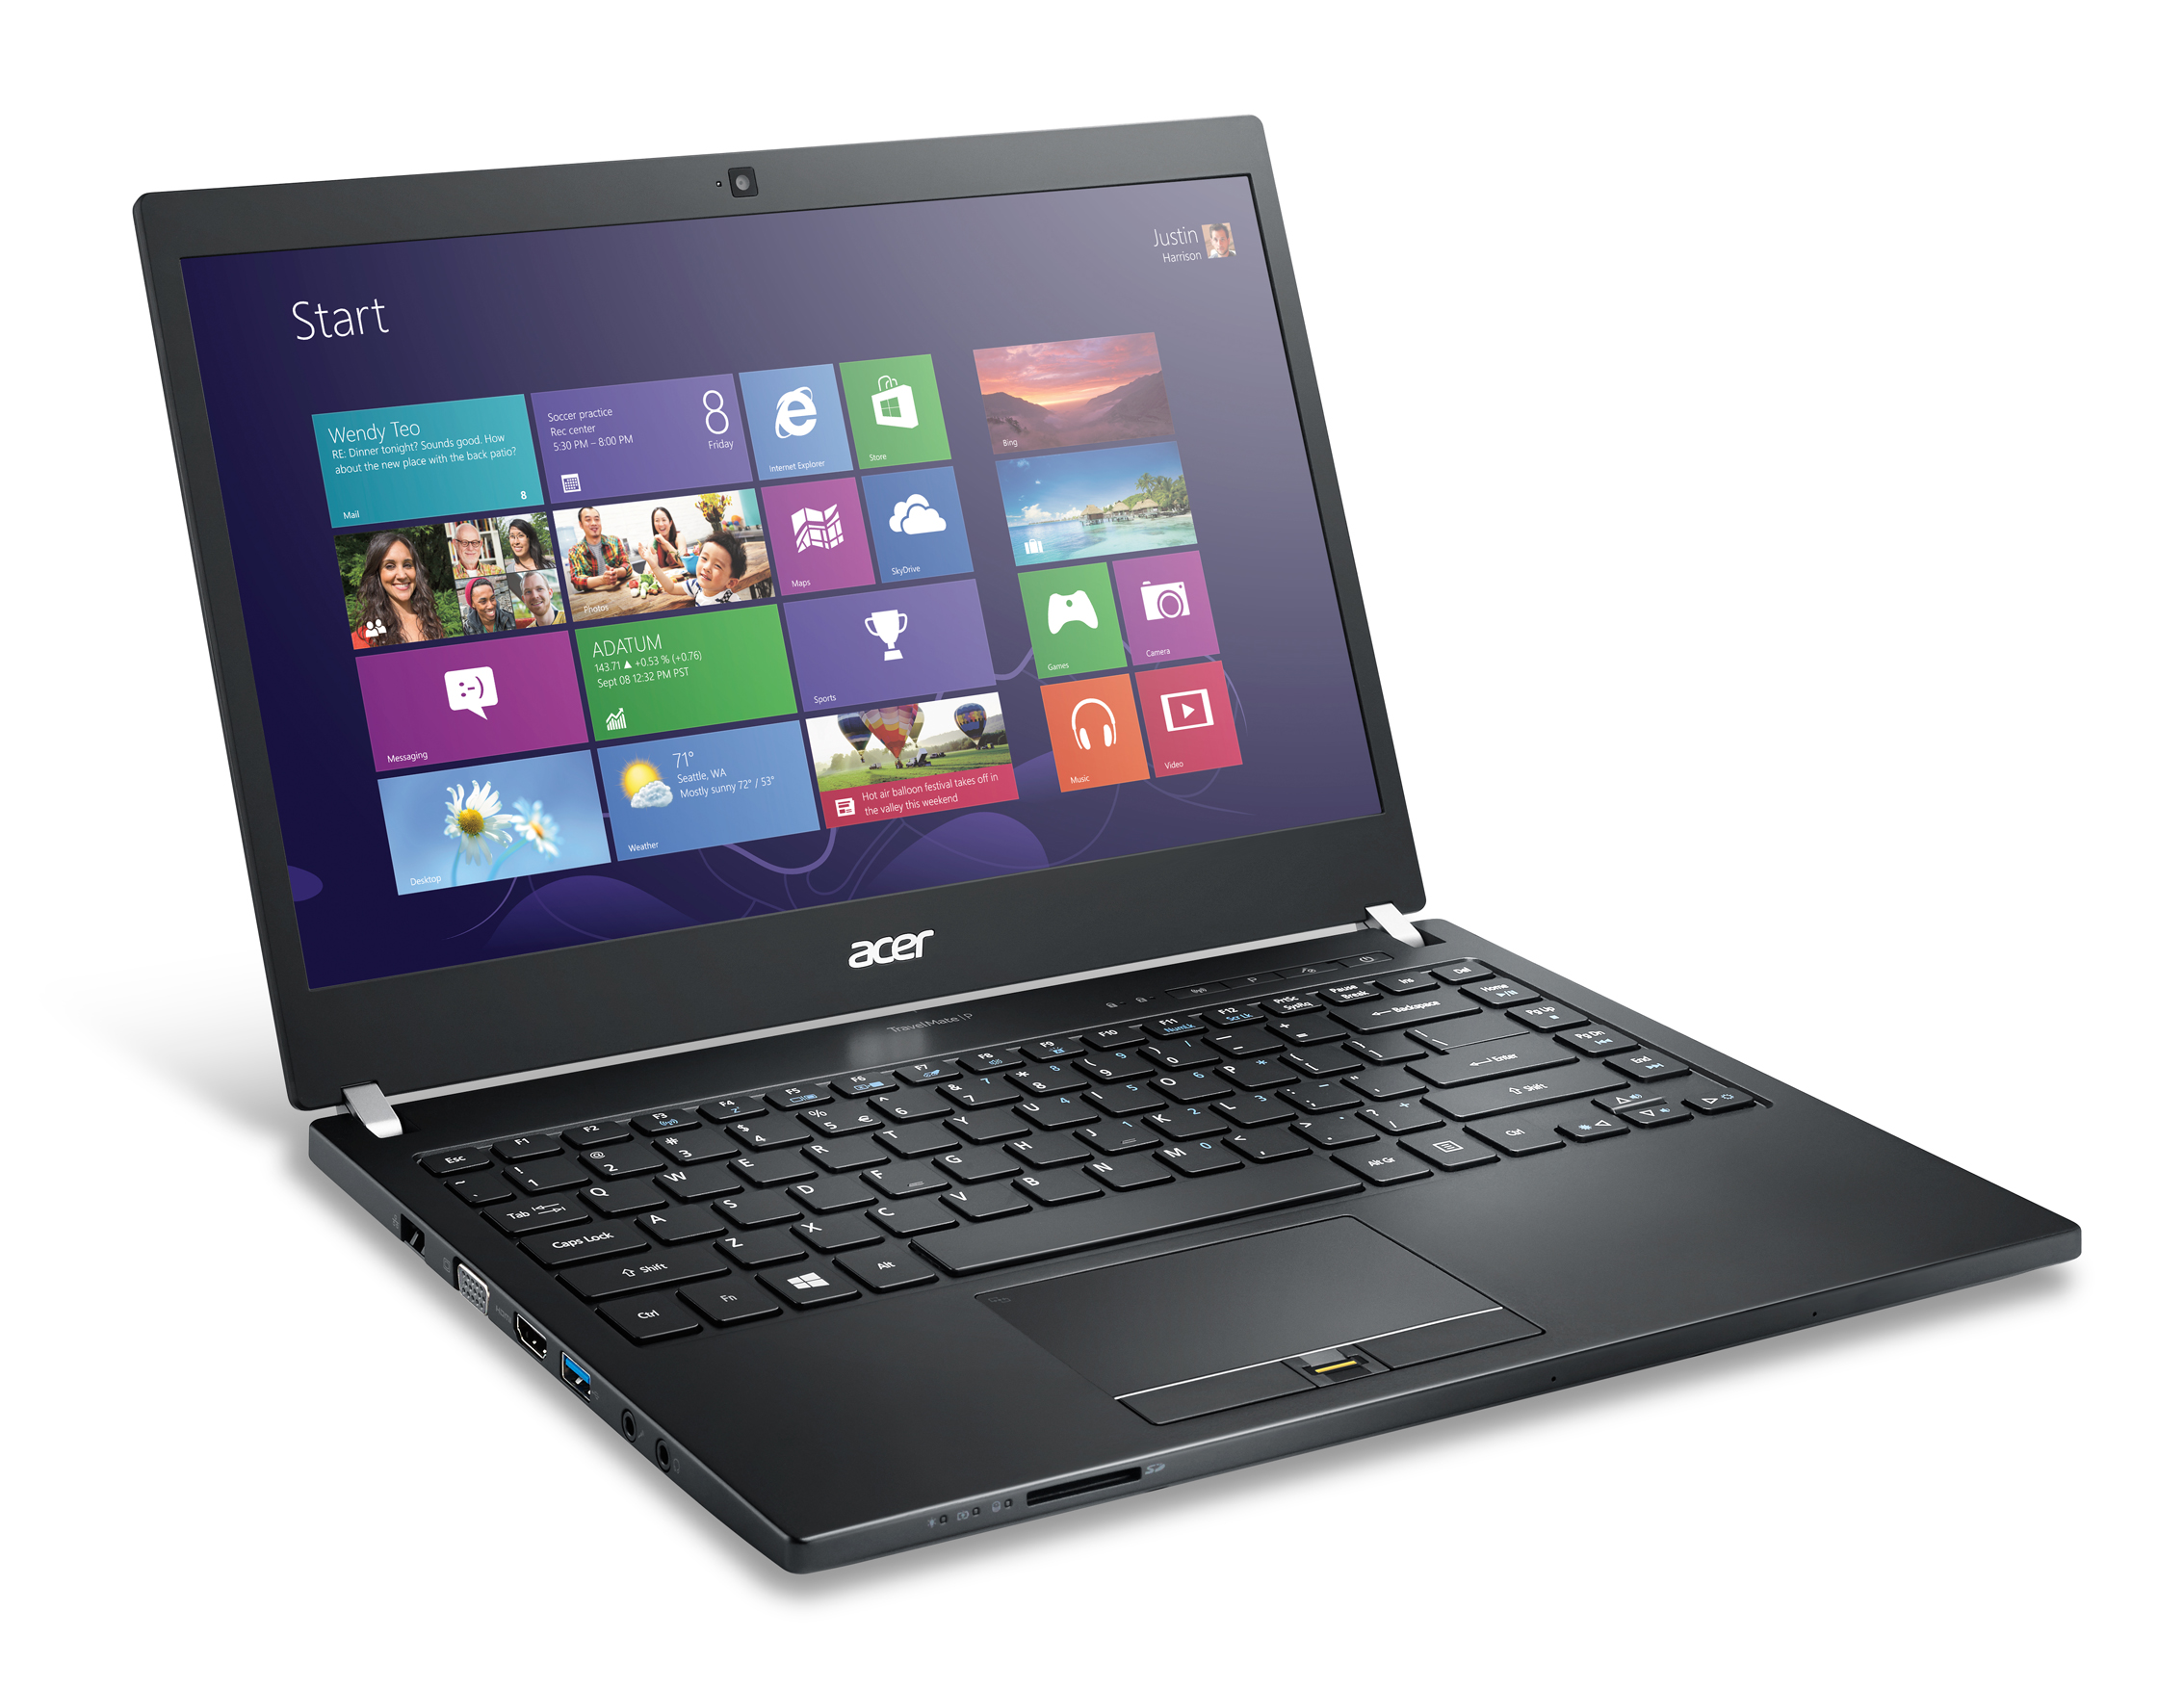 Acer TravelMate P645_wp_win8_02